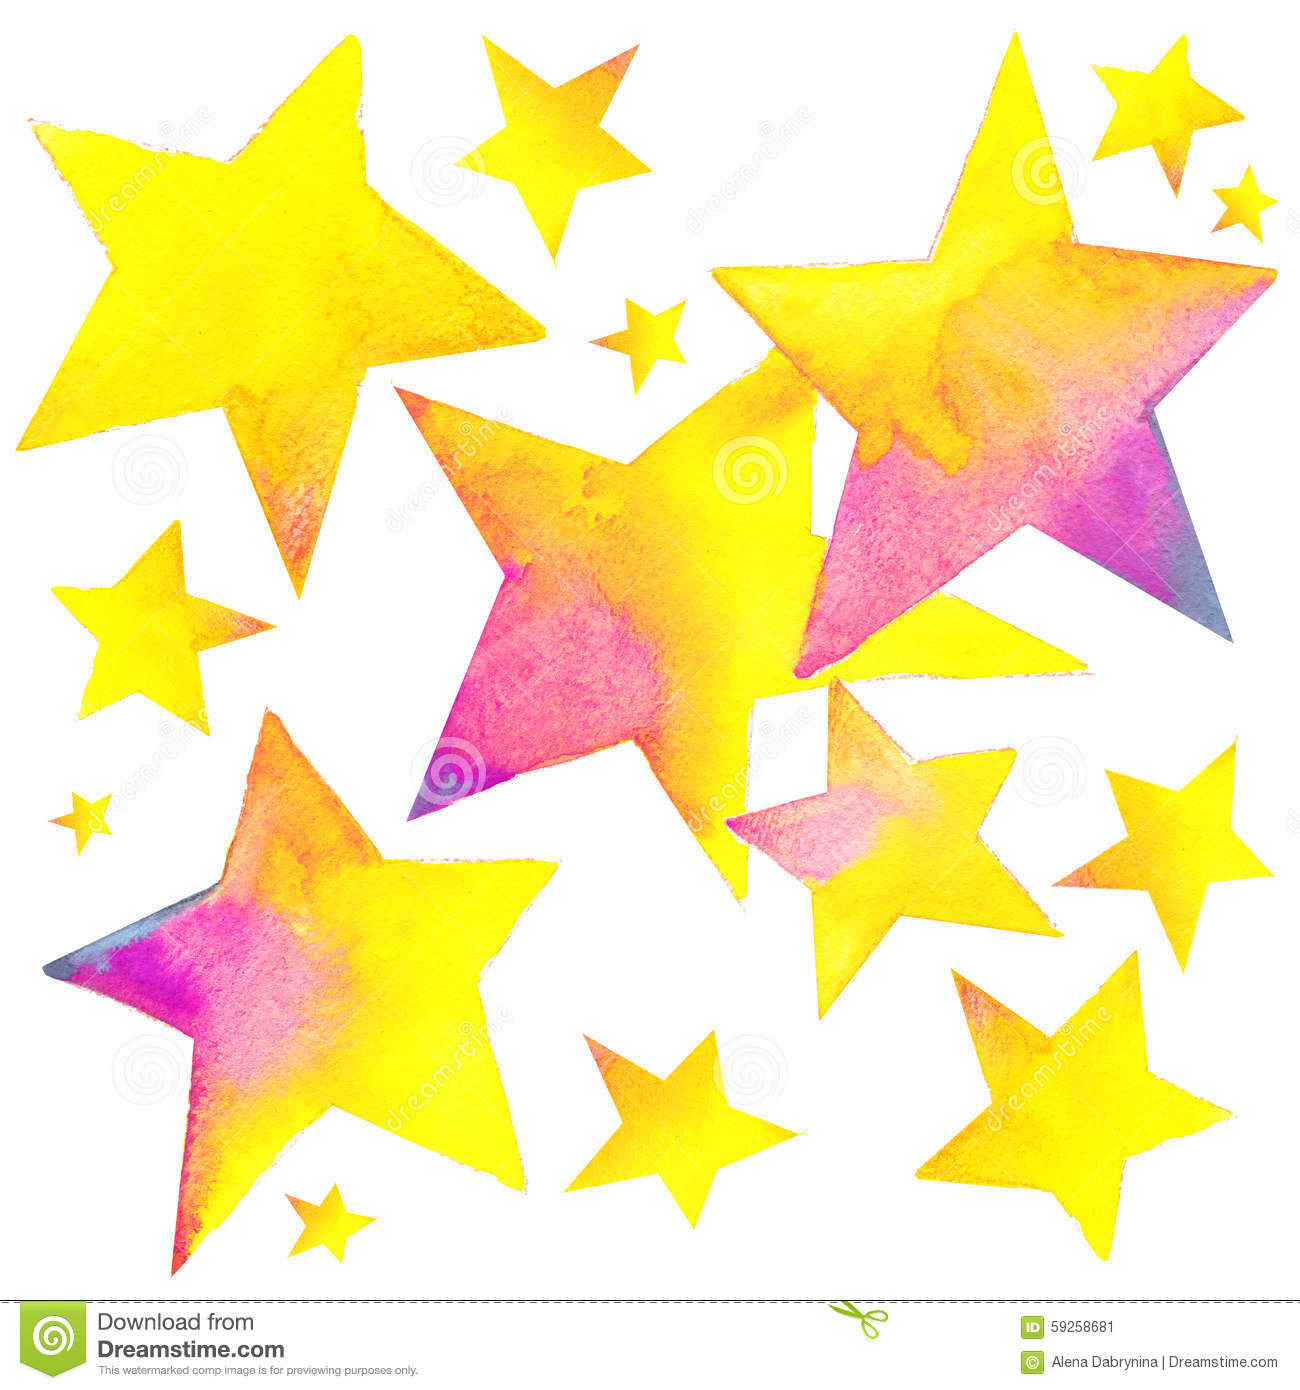 Stars for kids images galleries with for Images of stars for kids